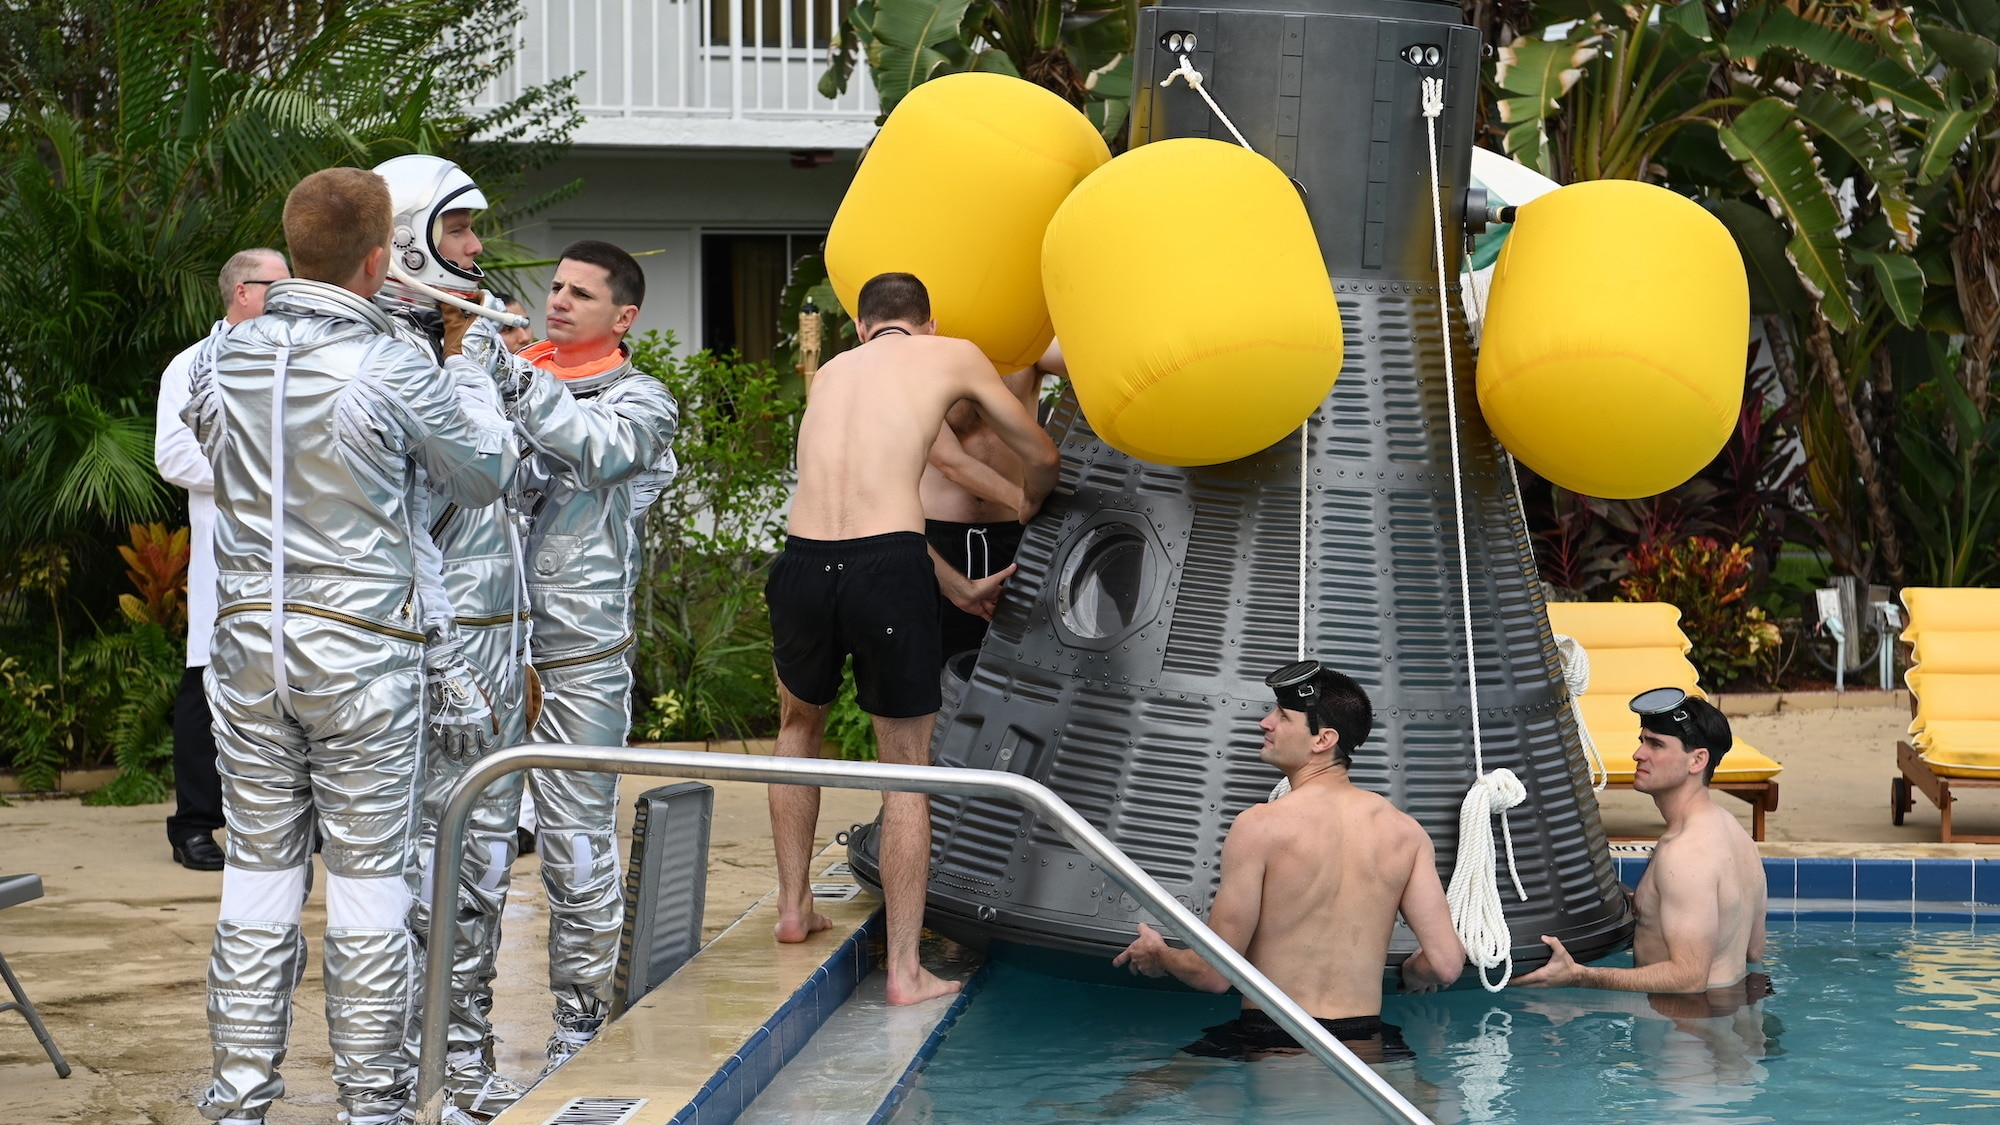 Mercury Seven astronauts during an emergency procedure demonstration in a swimming pool for Dr. Jerome Wiesner and other members of the President's Science Advisory Committee (not pictured) in National Geographic's THE RIGHT STUFF streaming on Disney+. (Credit: National Geographic/Gene Page)